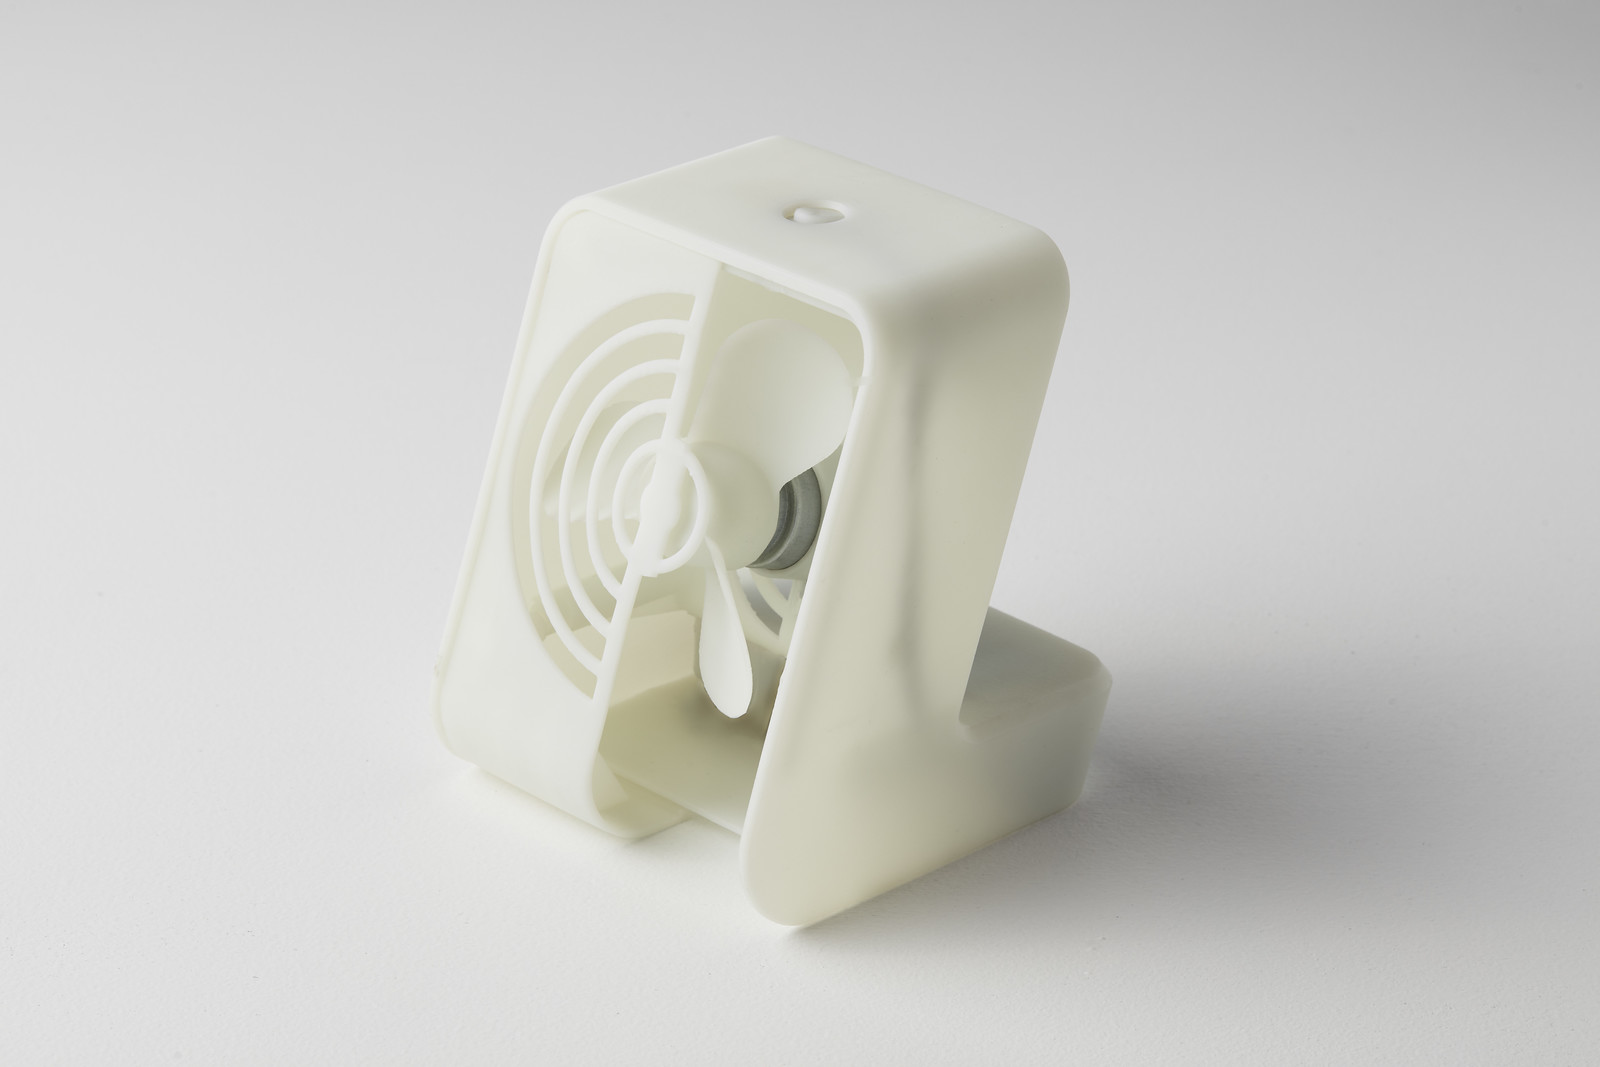 Formlabs Rigid Resin offers high modulus, high impact strength, high heat deflection temperature, and low creep, so the thin features of this fan will be able to withstand repeated wear over time.